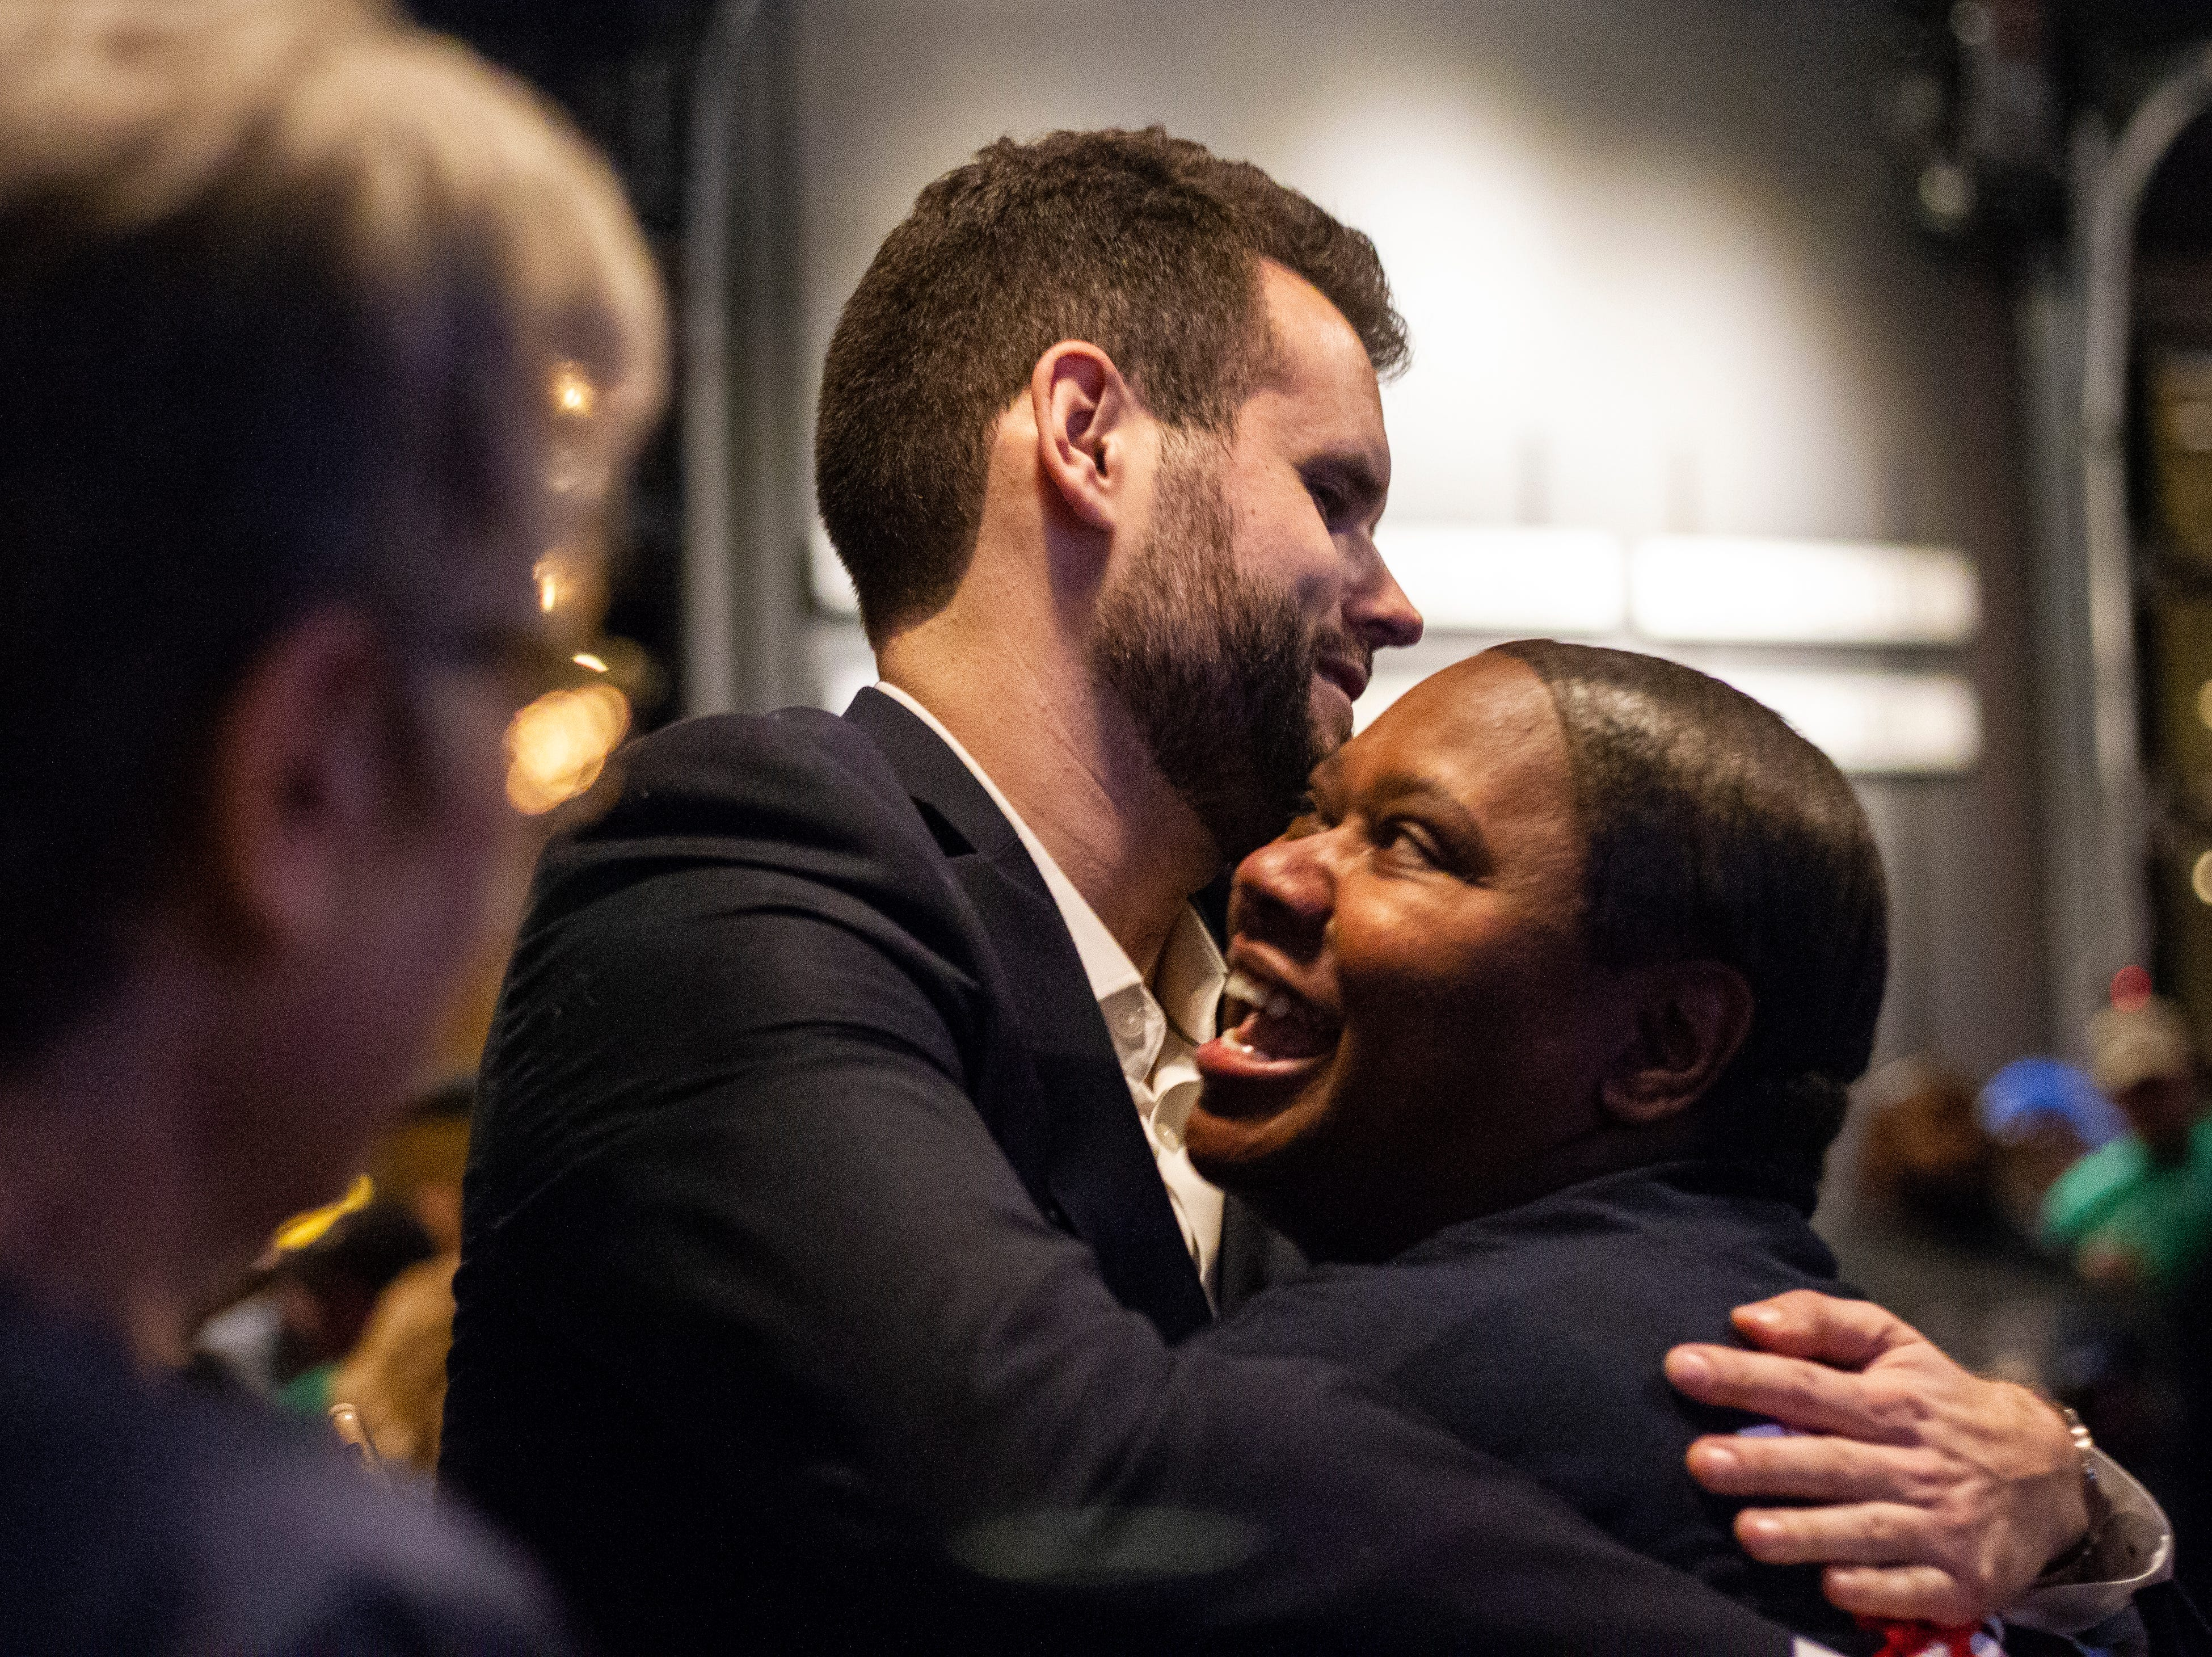 Zach Wahls embraces Royceann Porter during the Johnson County Democrats watch party on Tuesday, Nov. 6, 2018, at Big Grove Brewery in Iowa City.